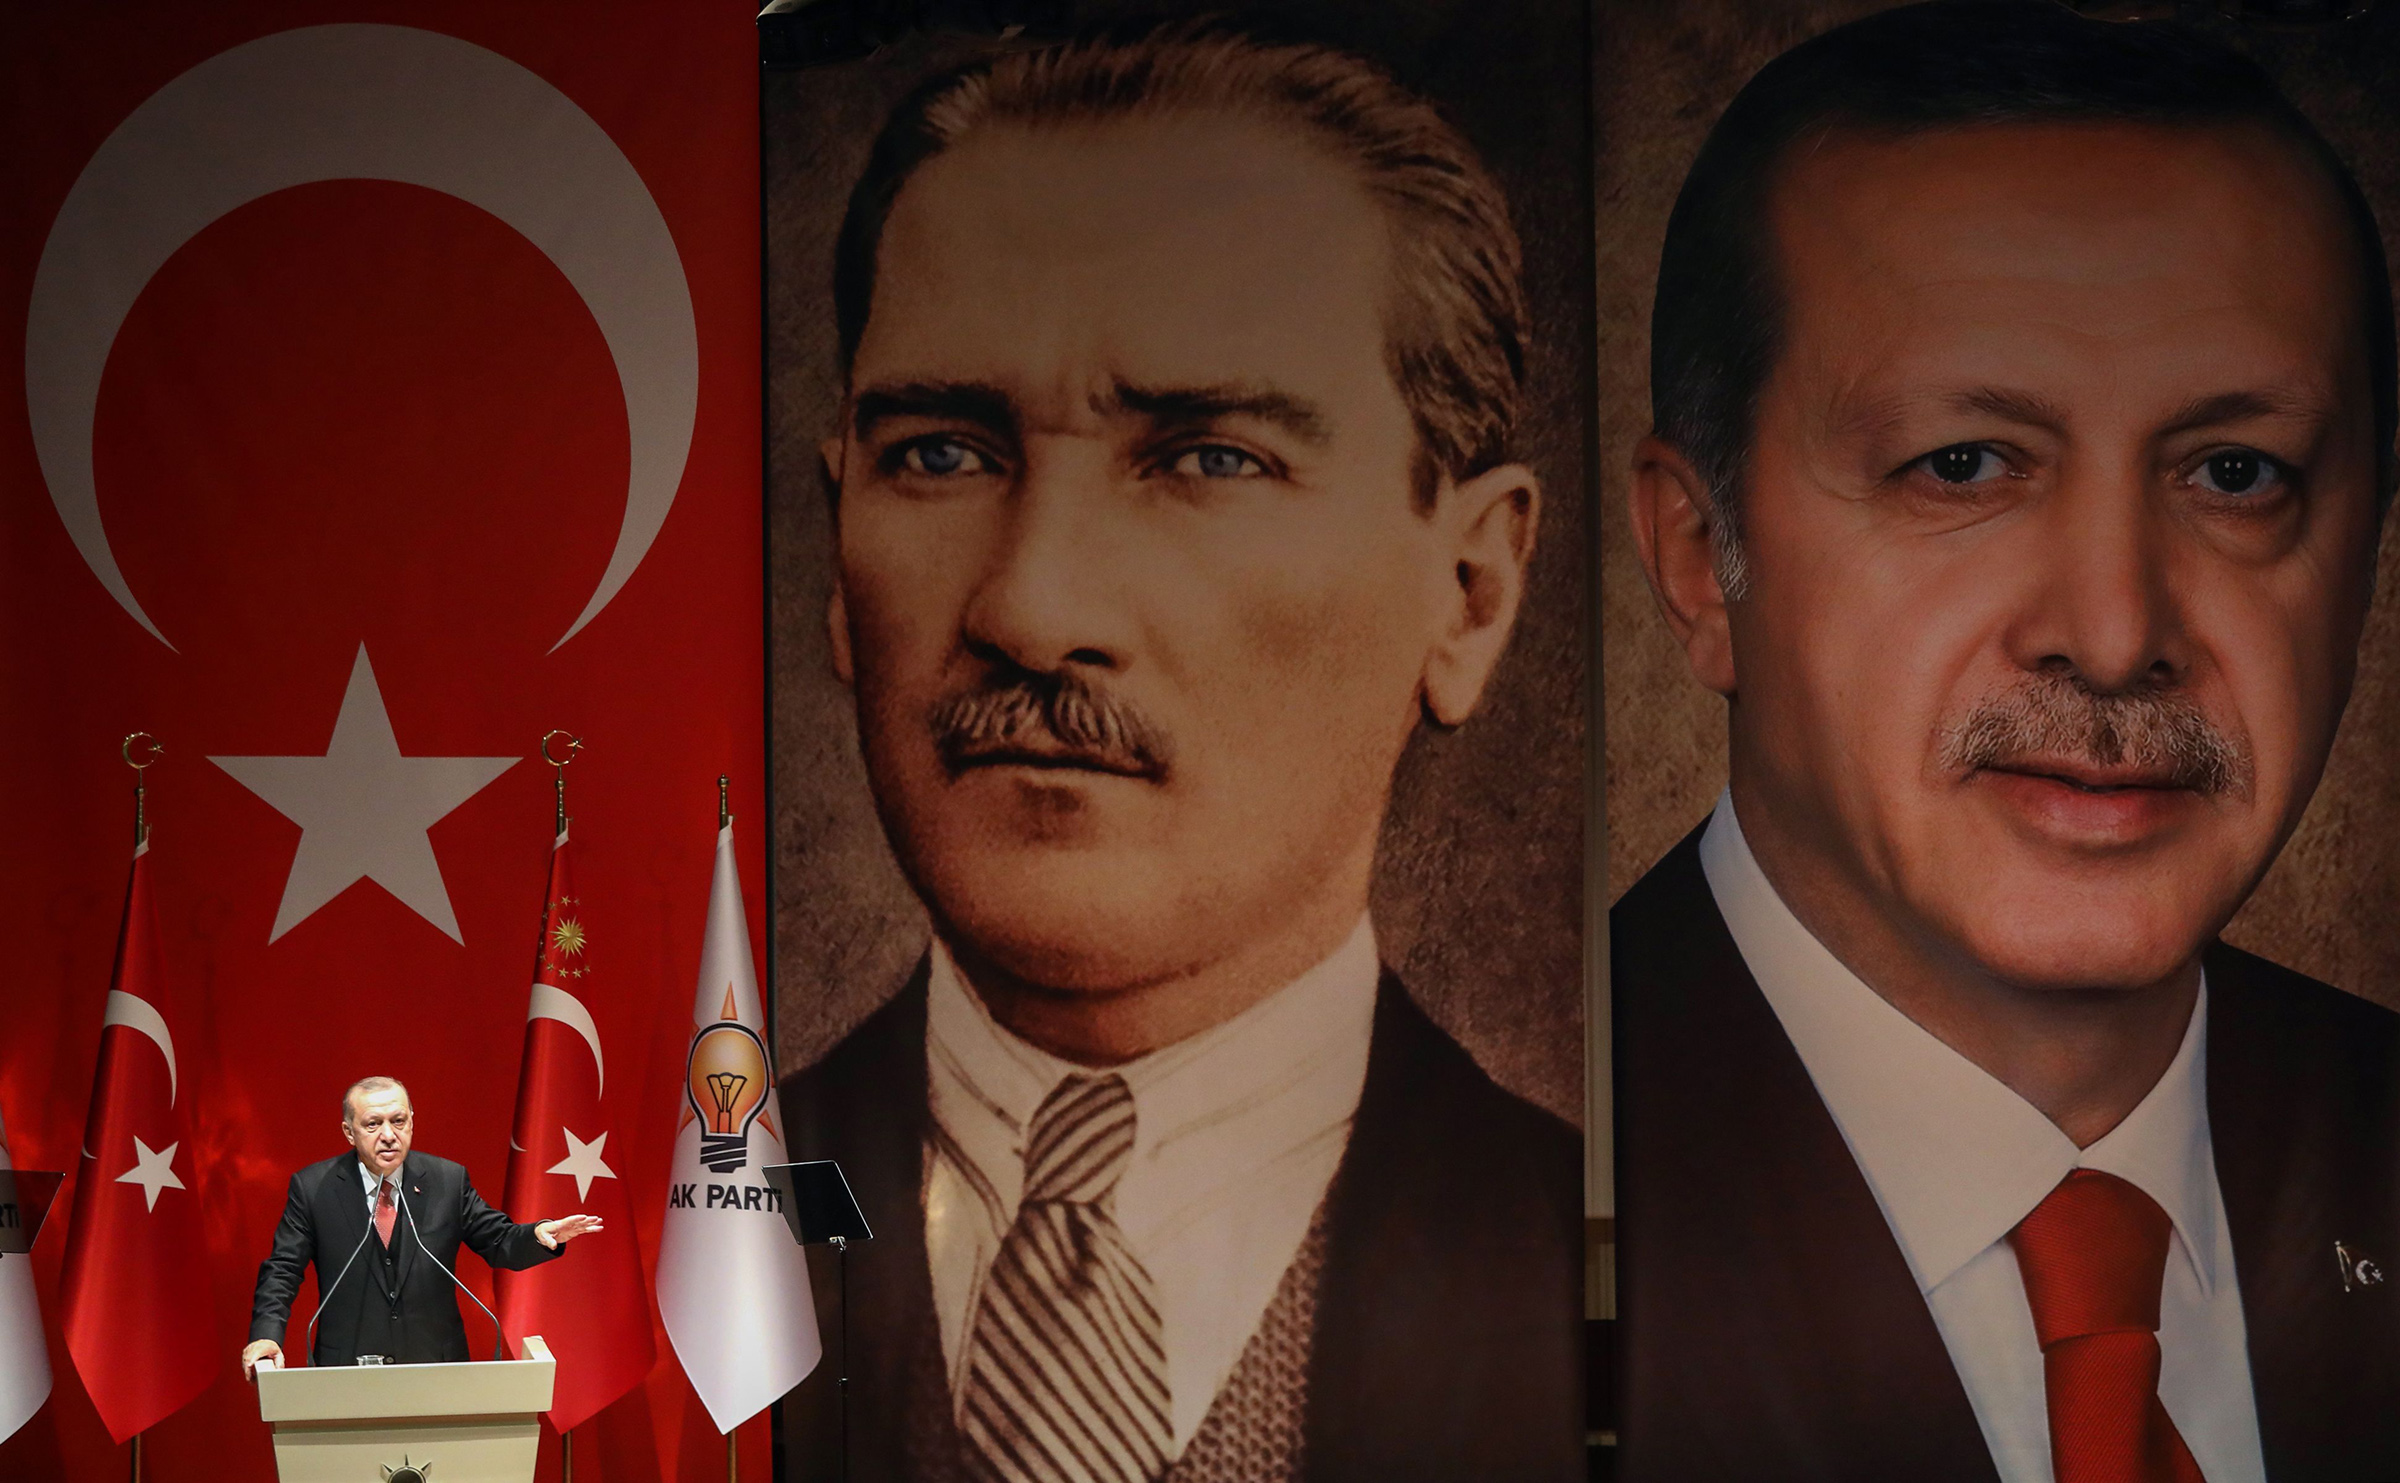 Turkish President Recep Tayyip Erdogan addresses a meeting of election officials in front of portraits of himself and Mustafa Kemal Ataturk, the founder of modern Turkey, in Ankara on Jan. 29, 2019.